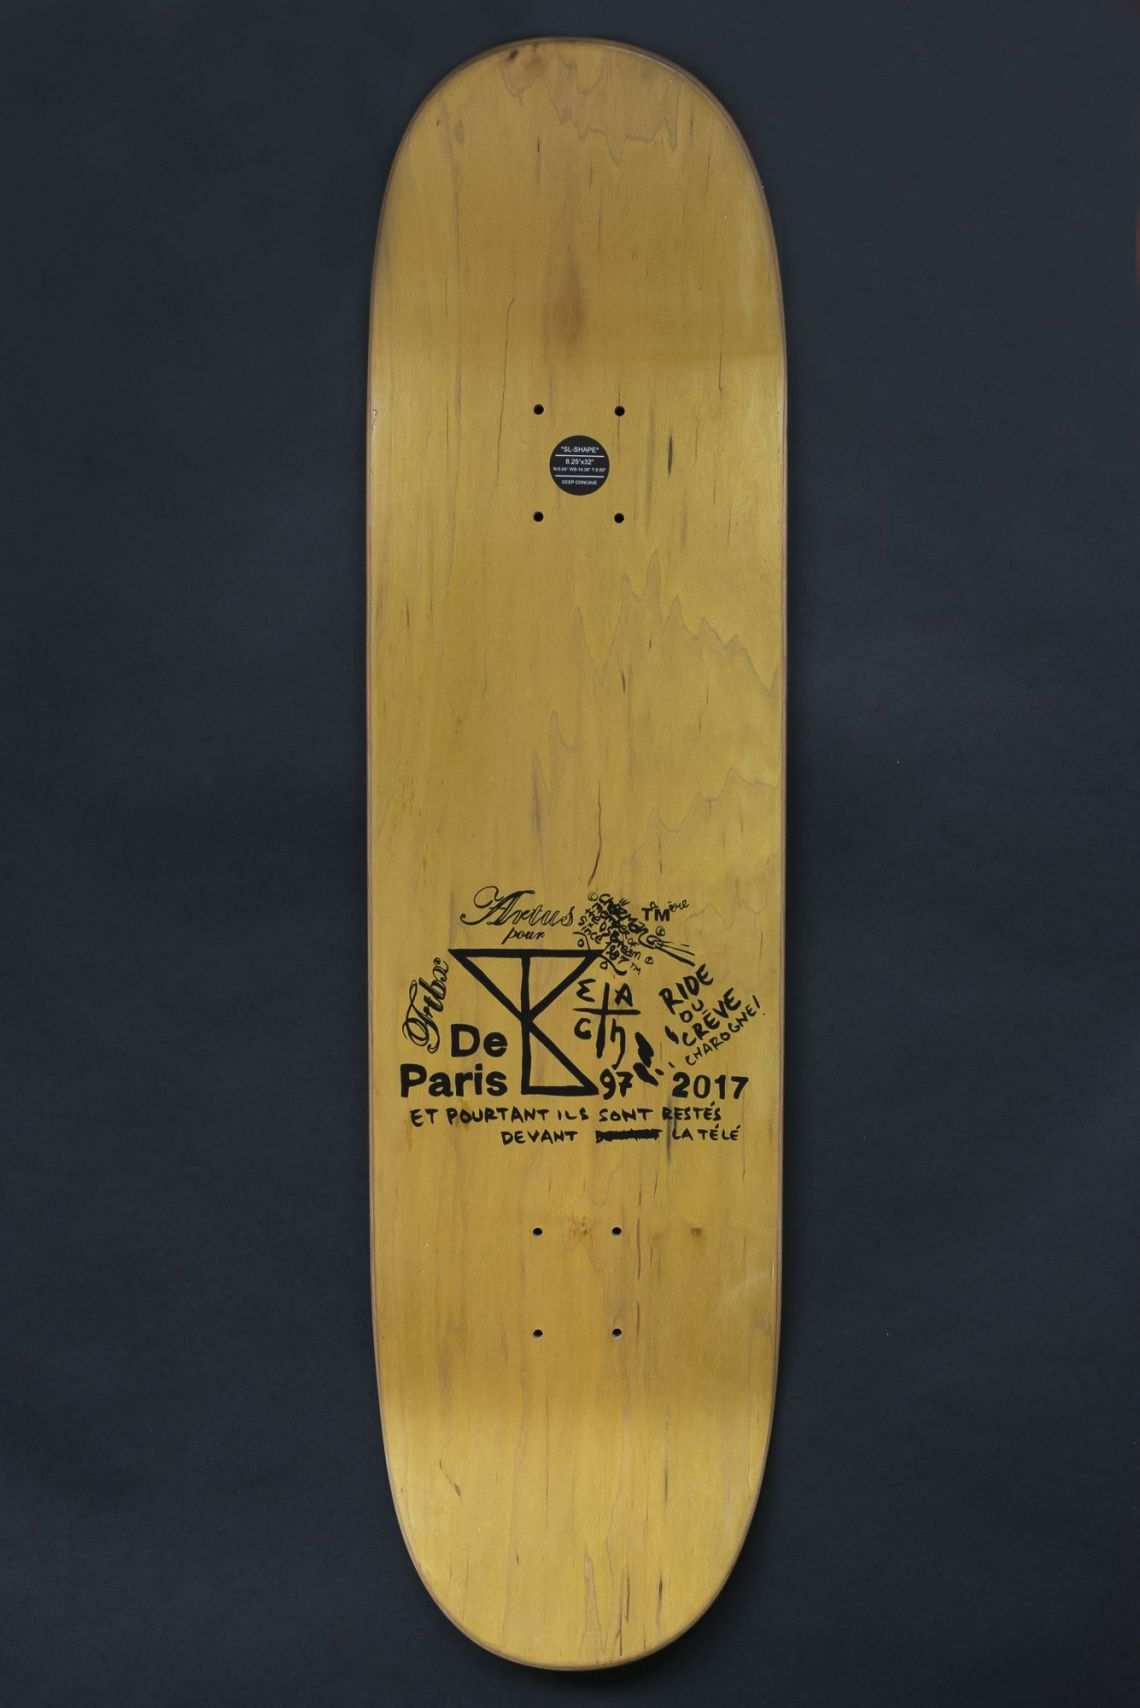 DeParis Yearbook x Artus de Lavilléon skateboards | The Daily Board